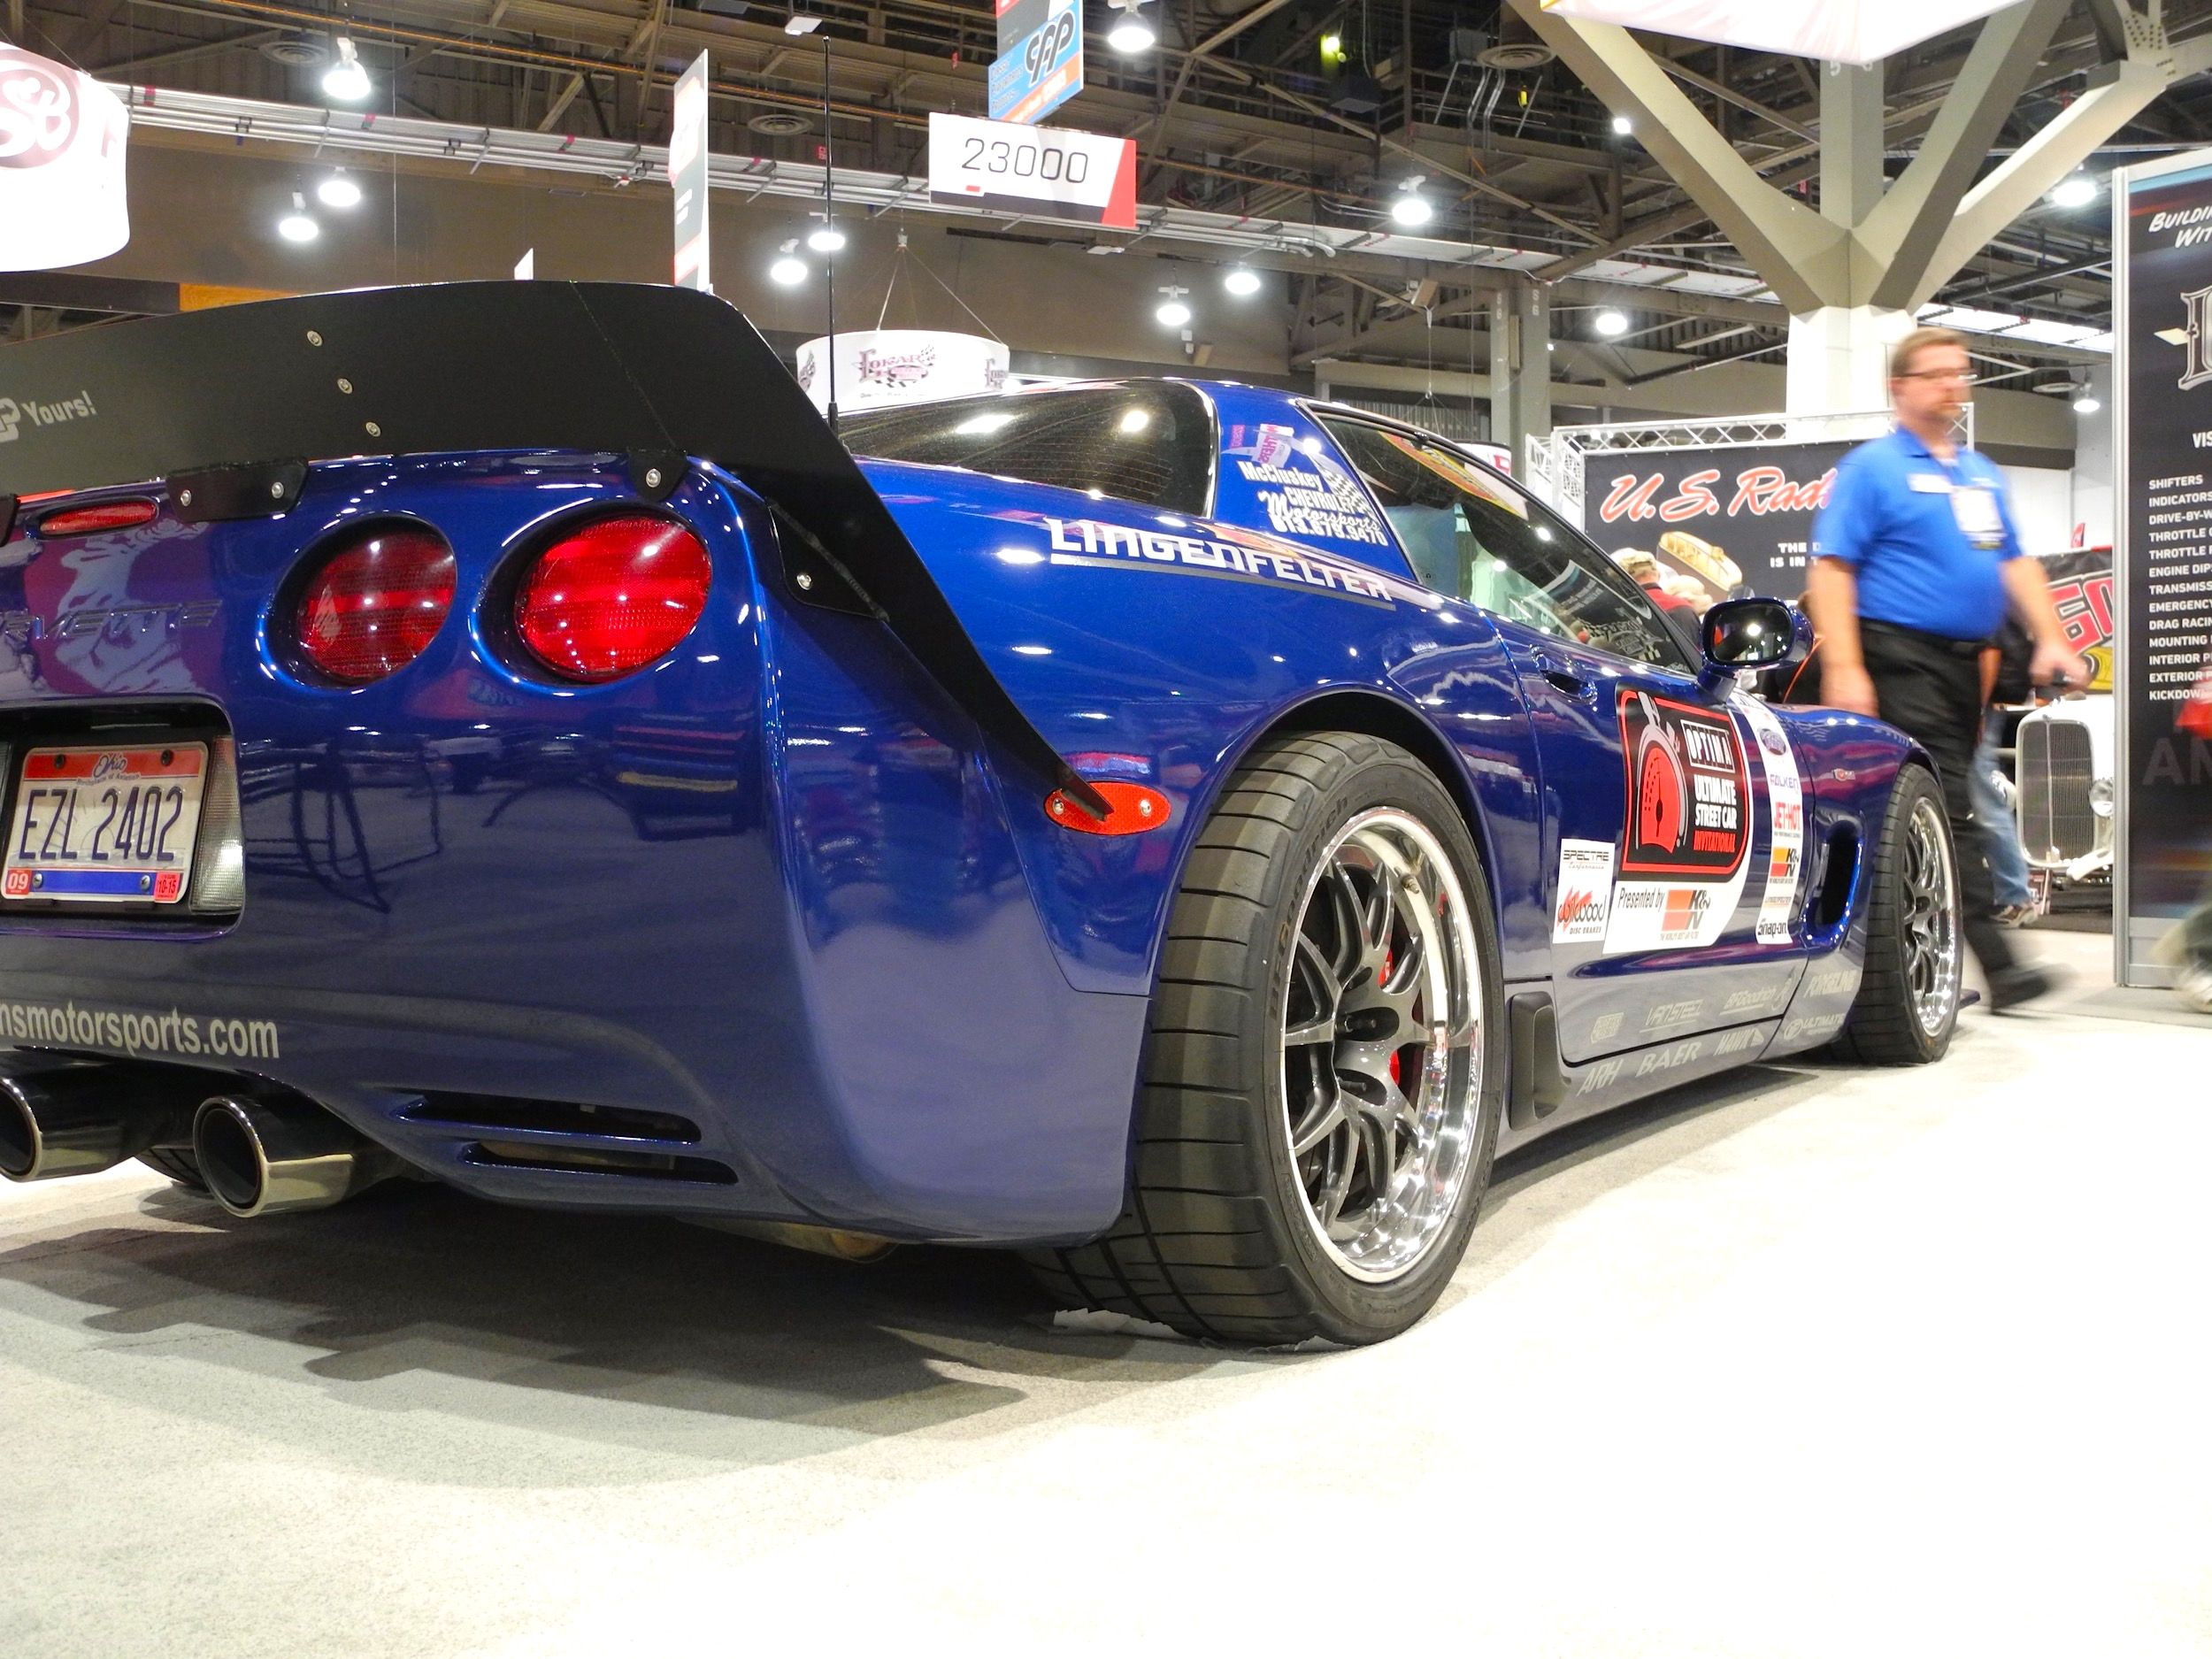 Danny Popp S Ousci Winning C5 Z06 At Champion S Corner In The Optima Batteries Booth At The 2015 Sema Show This Ling Corvette Corvette C5 Performance Racing